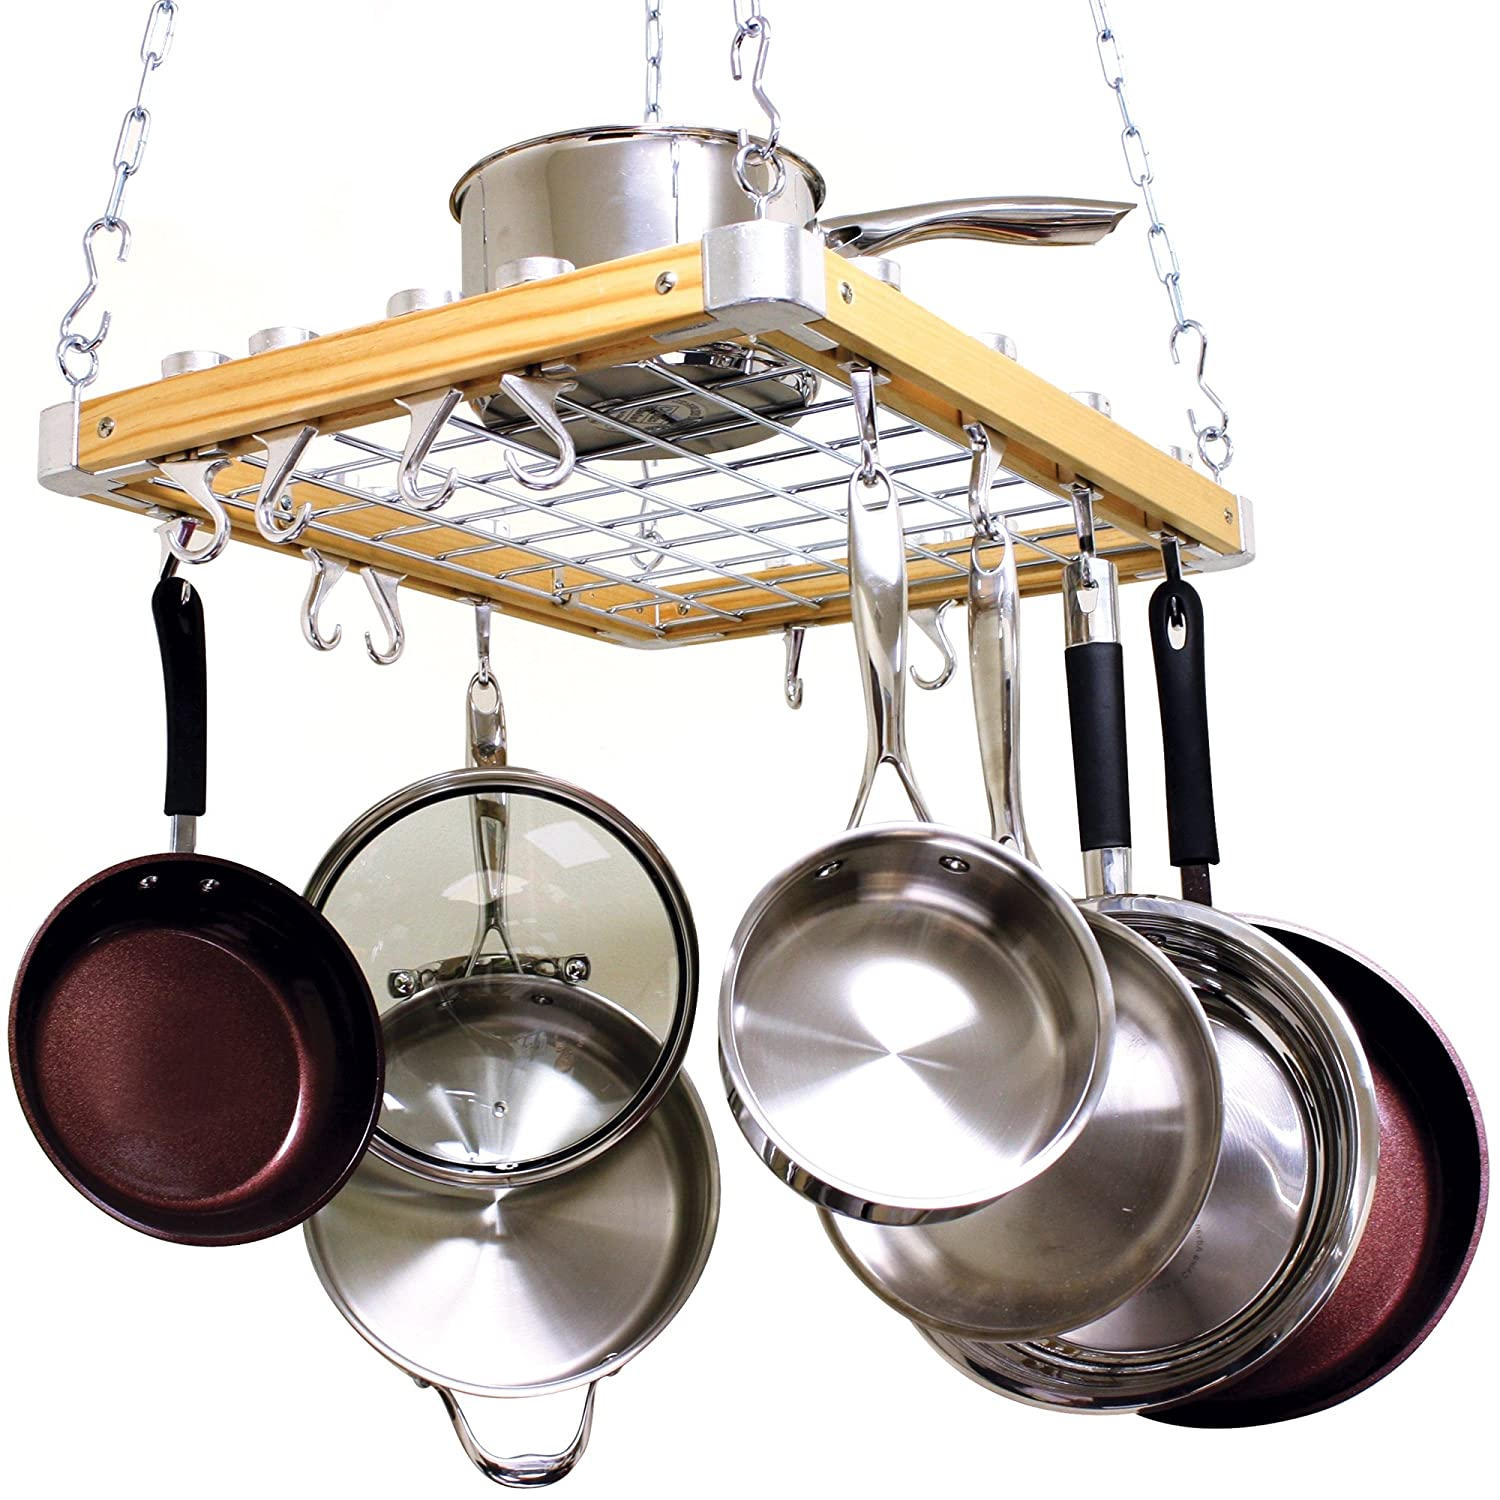 Decorative Wall Mounted Pot Rack For Kitchen Webnuggetz Com